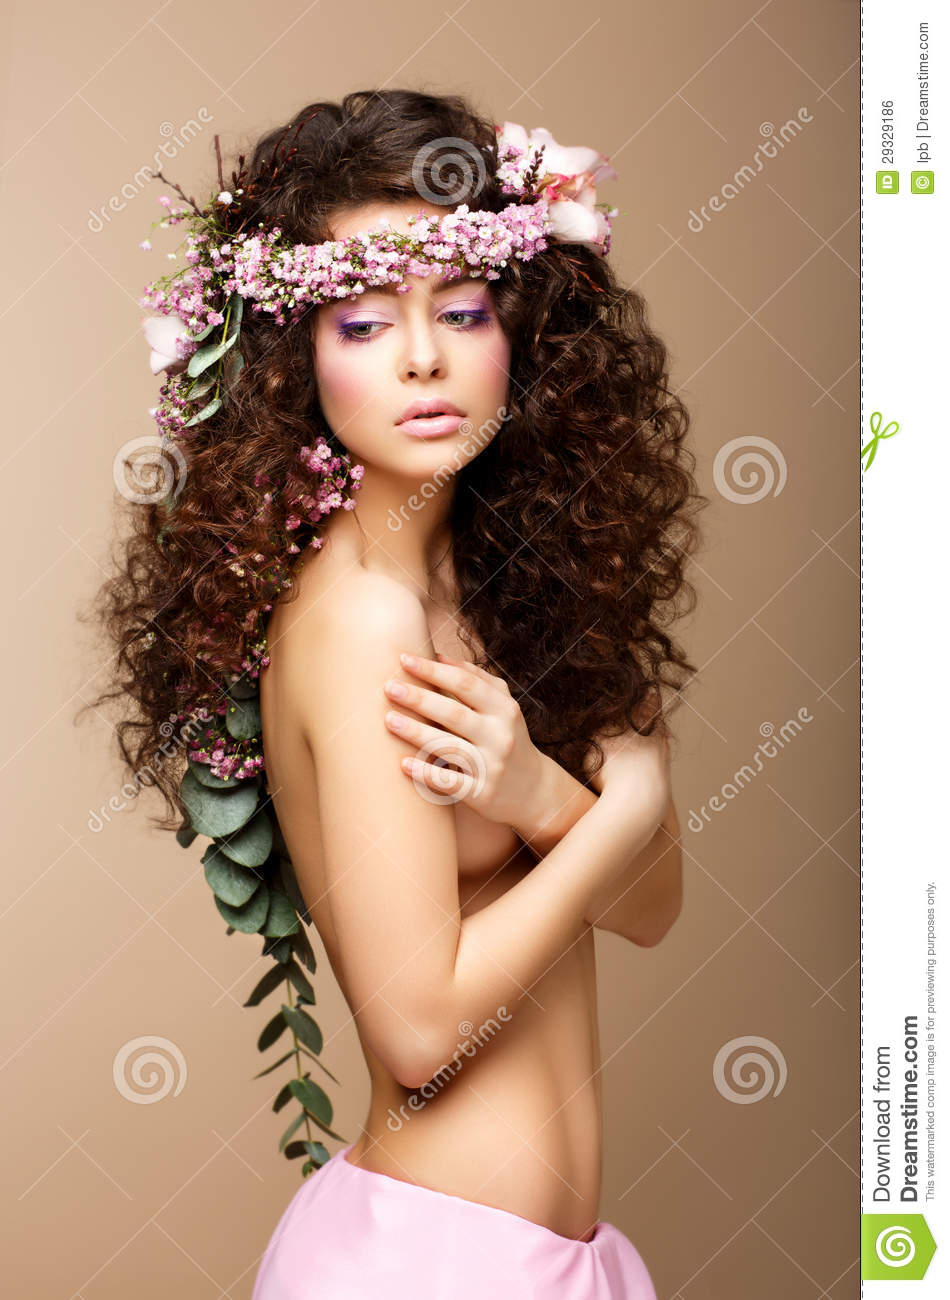 Naked girls with curly hair